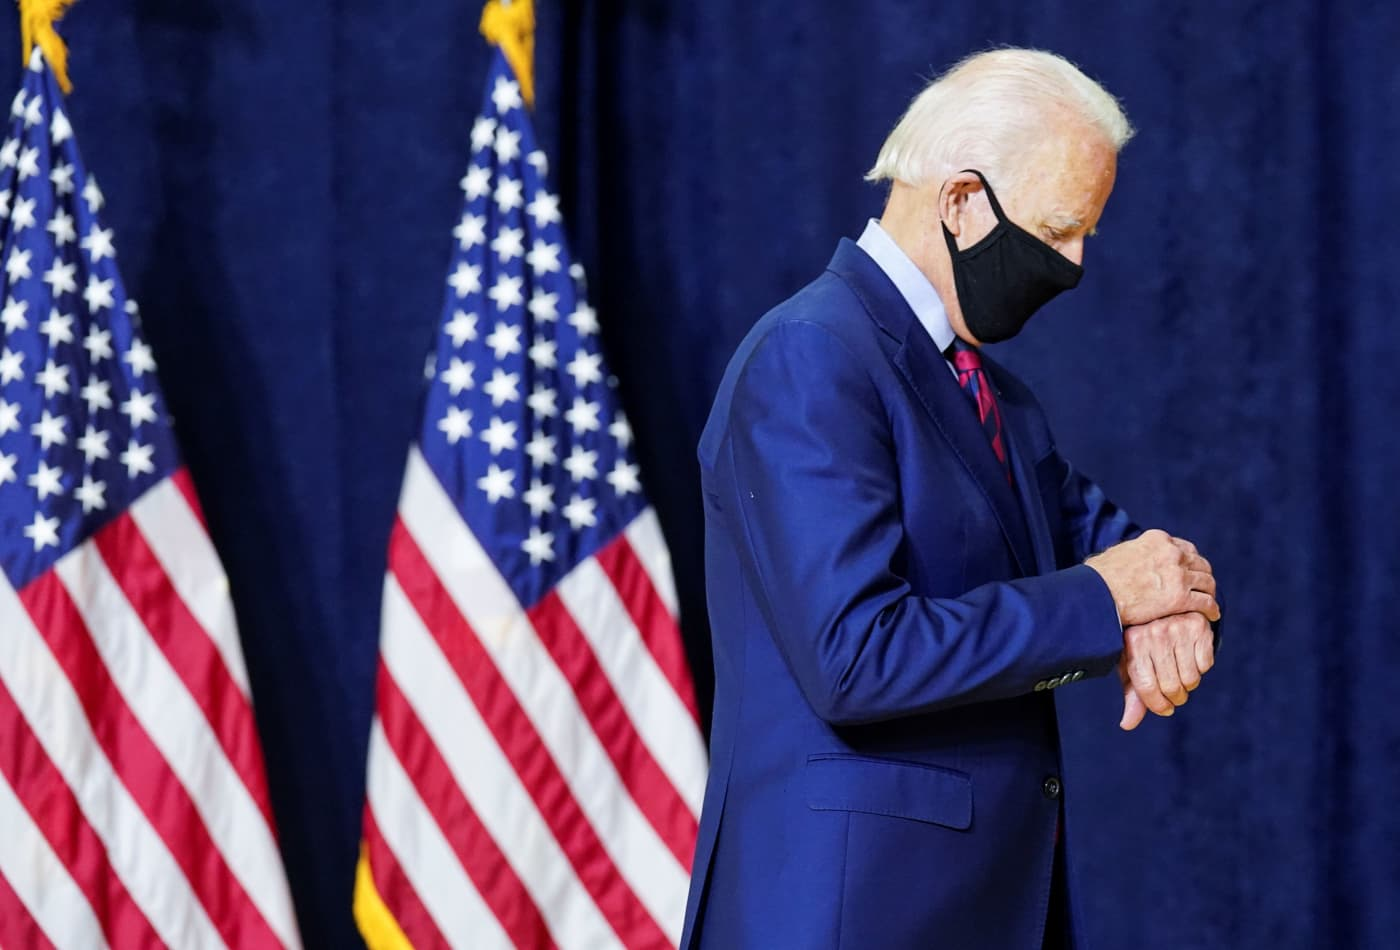 Biden Covid advisor says U.S. lockdown of 4 to 6 weeks could control pandemic and revive economy